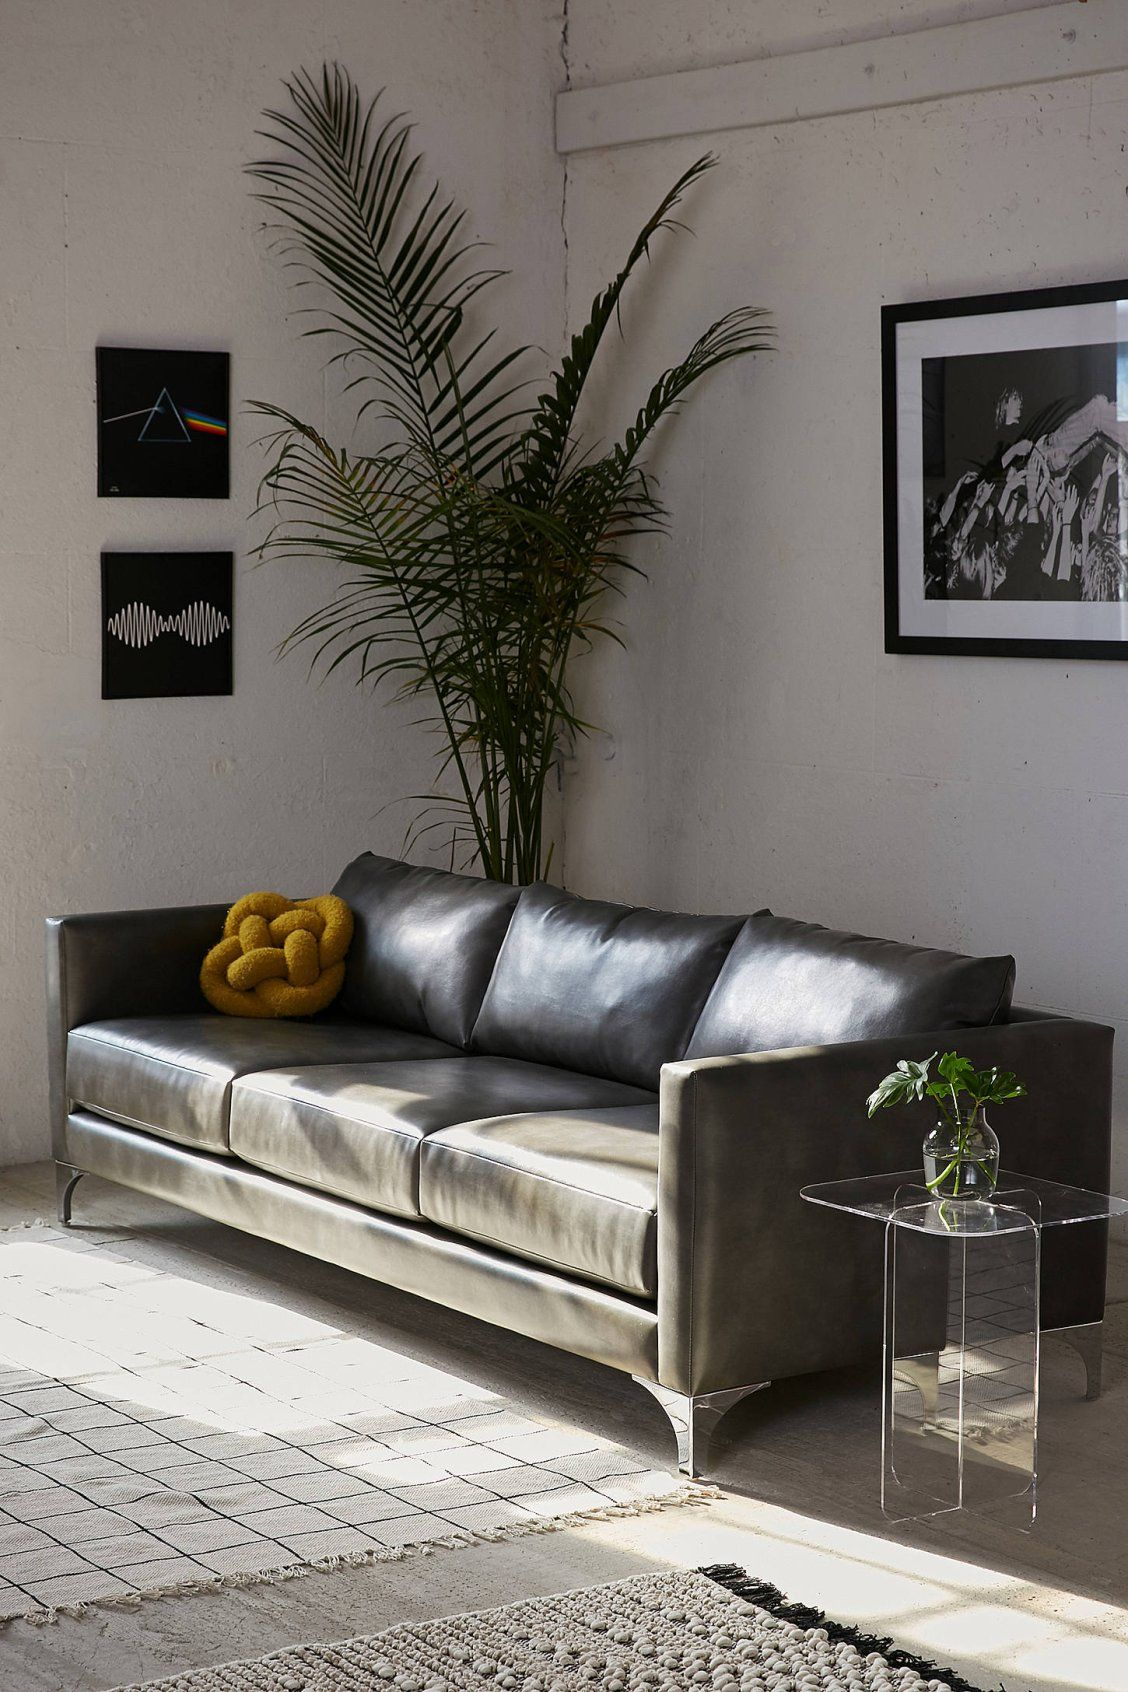 Tremendous Chamberlin Recycled Leather Sofa Urban Outfitters Pabps2019 Chair Design Images Pabps2019Com